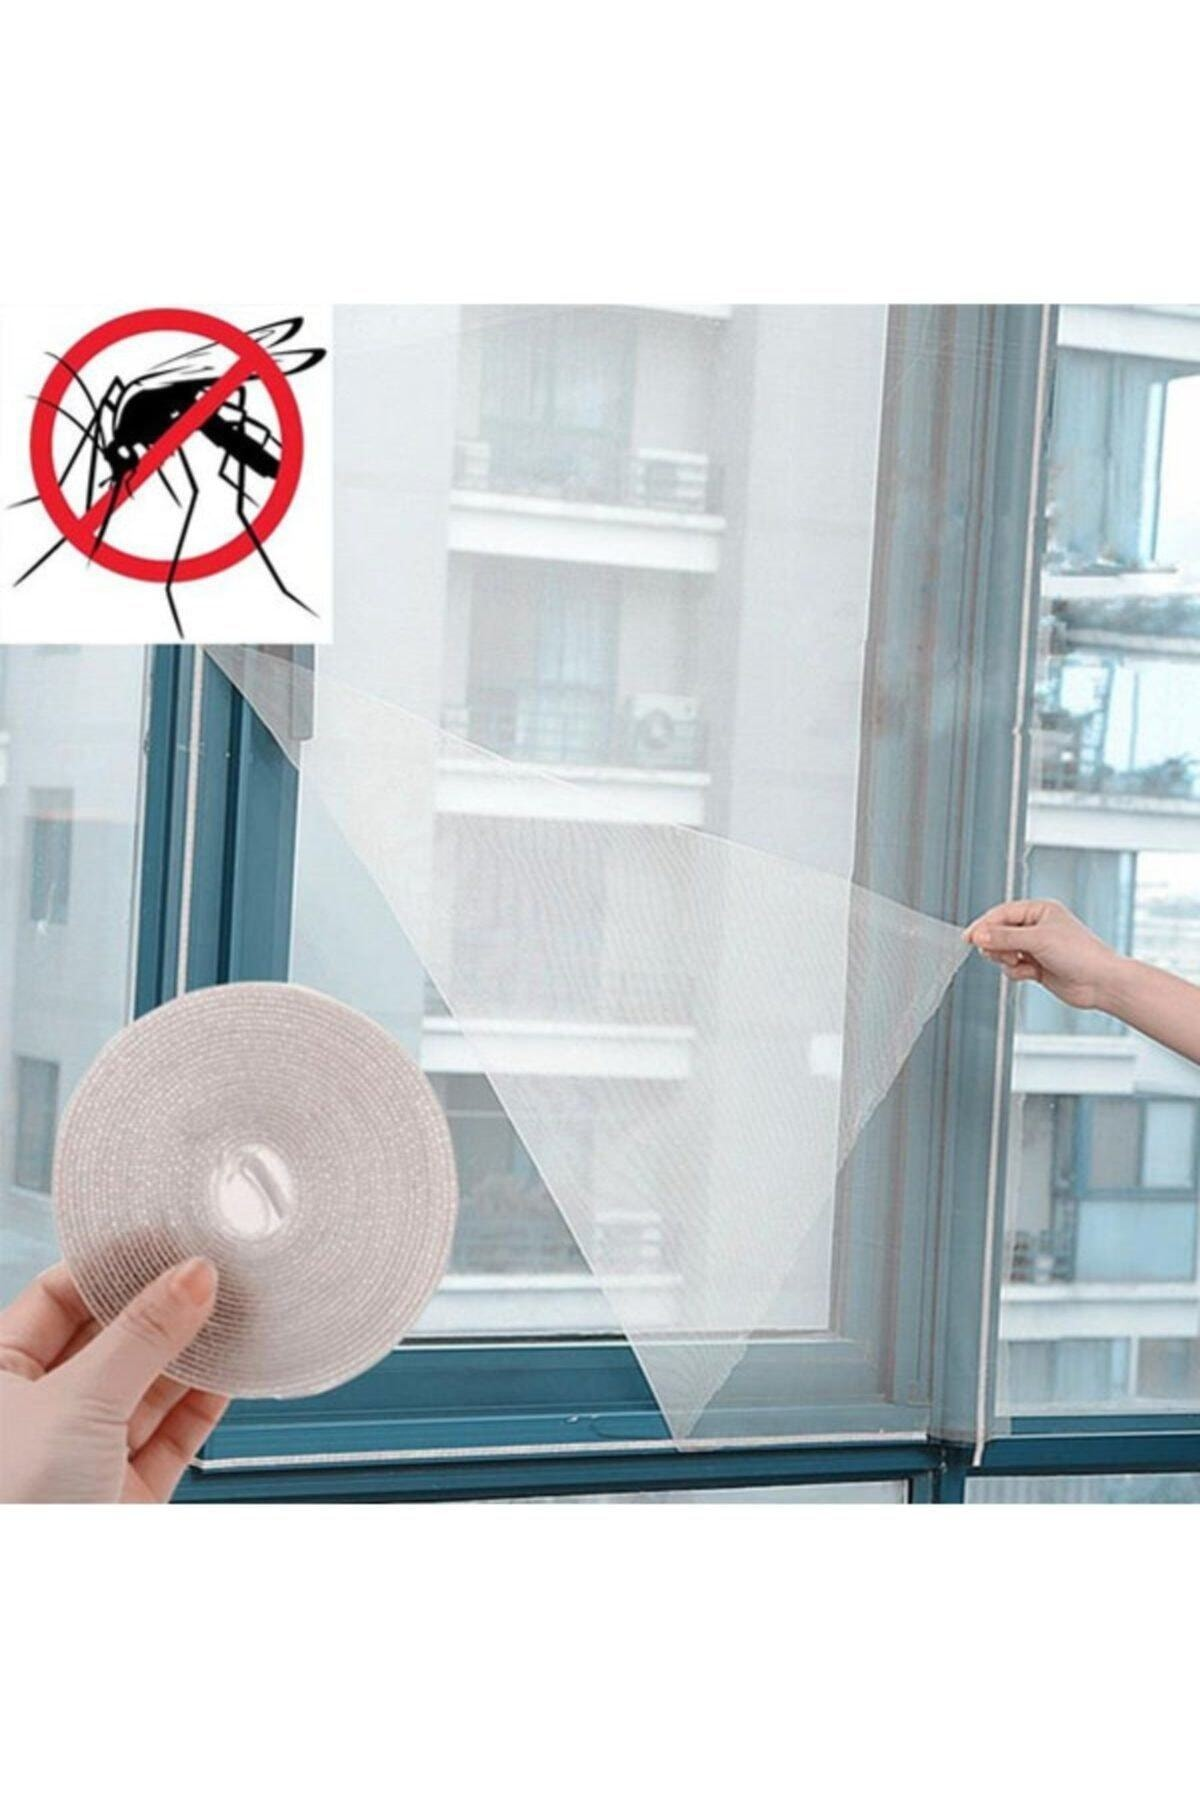 Window Glass Fly Screen 150x130cm Adjustable Syntax Tulle Fly Screen